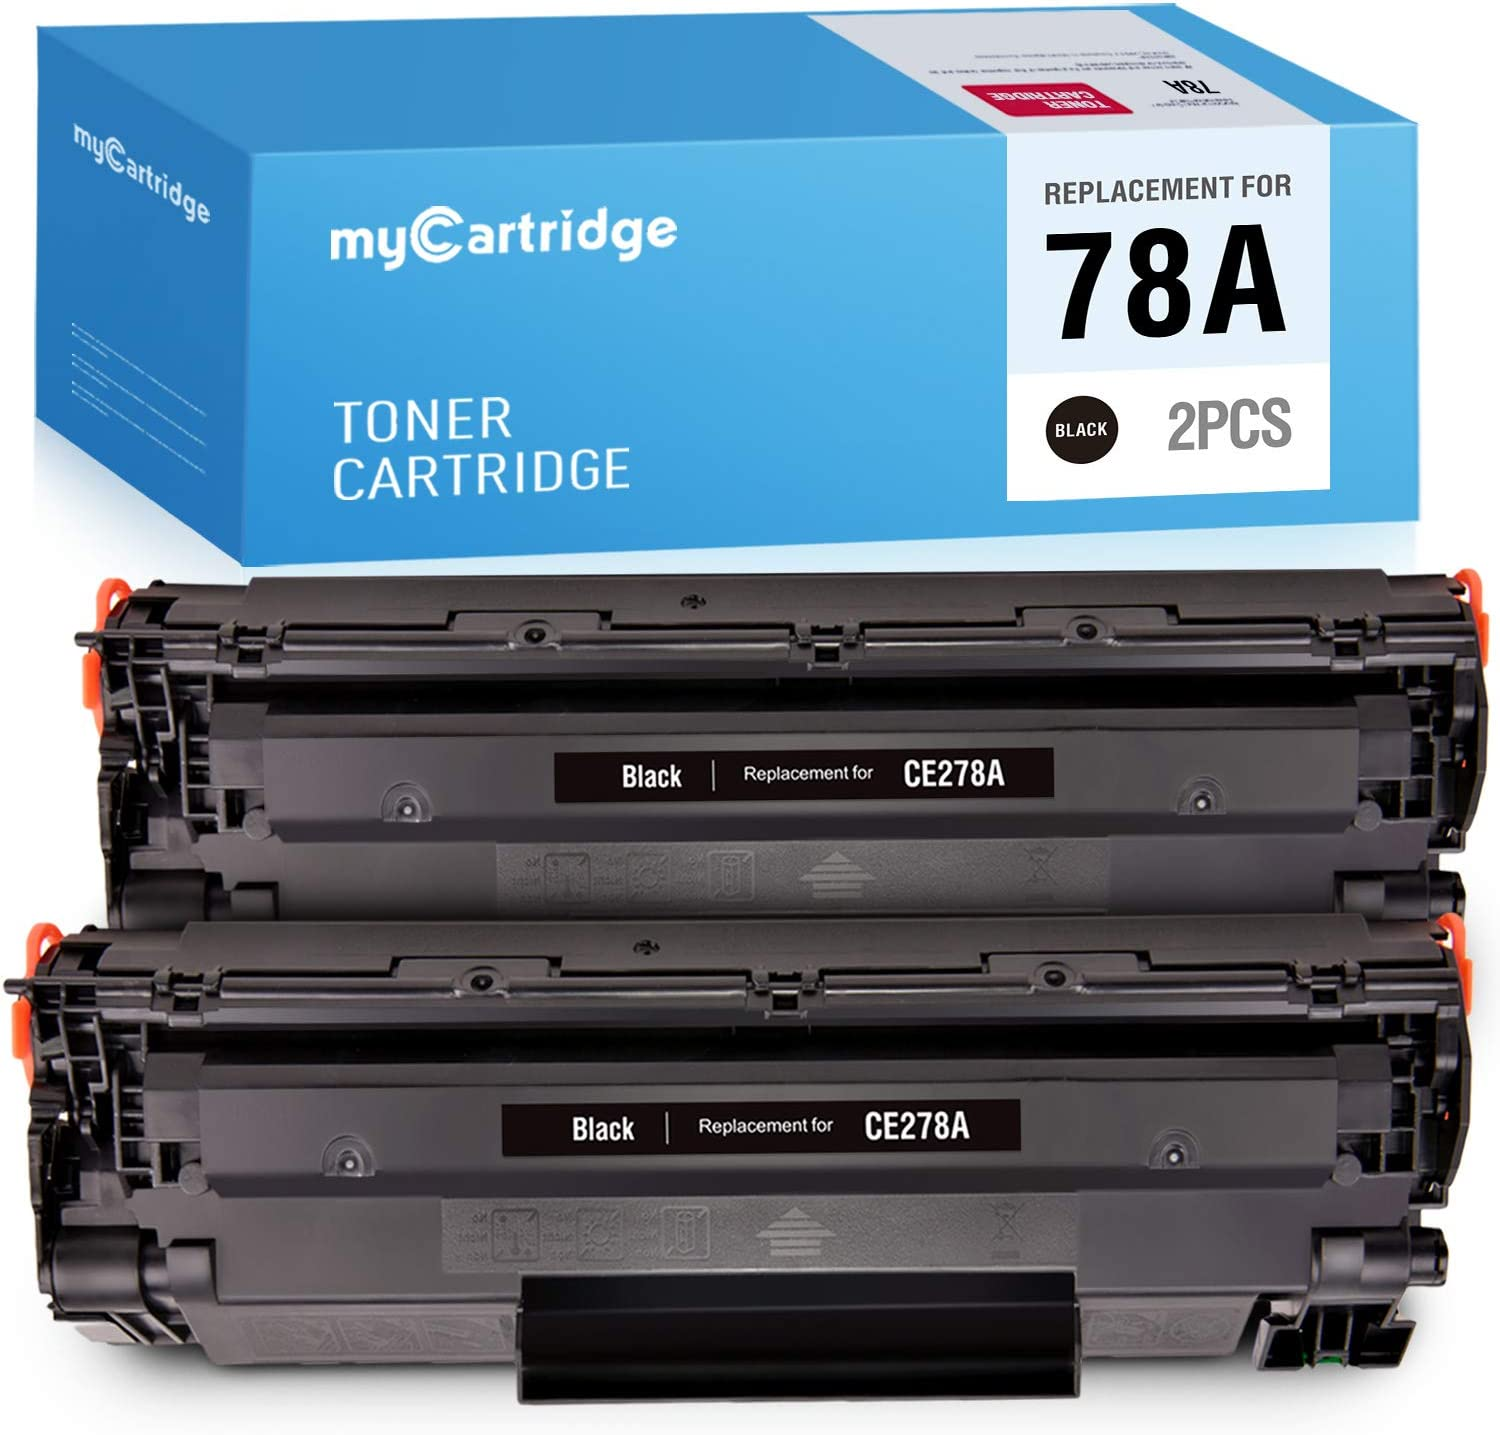 MYCARTRIDGE Compatible Toner Cartridge Replacement for HP CE278A 78A 2 Black Use with Laserjet P1606dn 1606dn Laserjet M1536dnf 1536dnf MFP Laserjet P1566 P1560